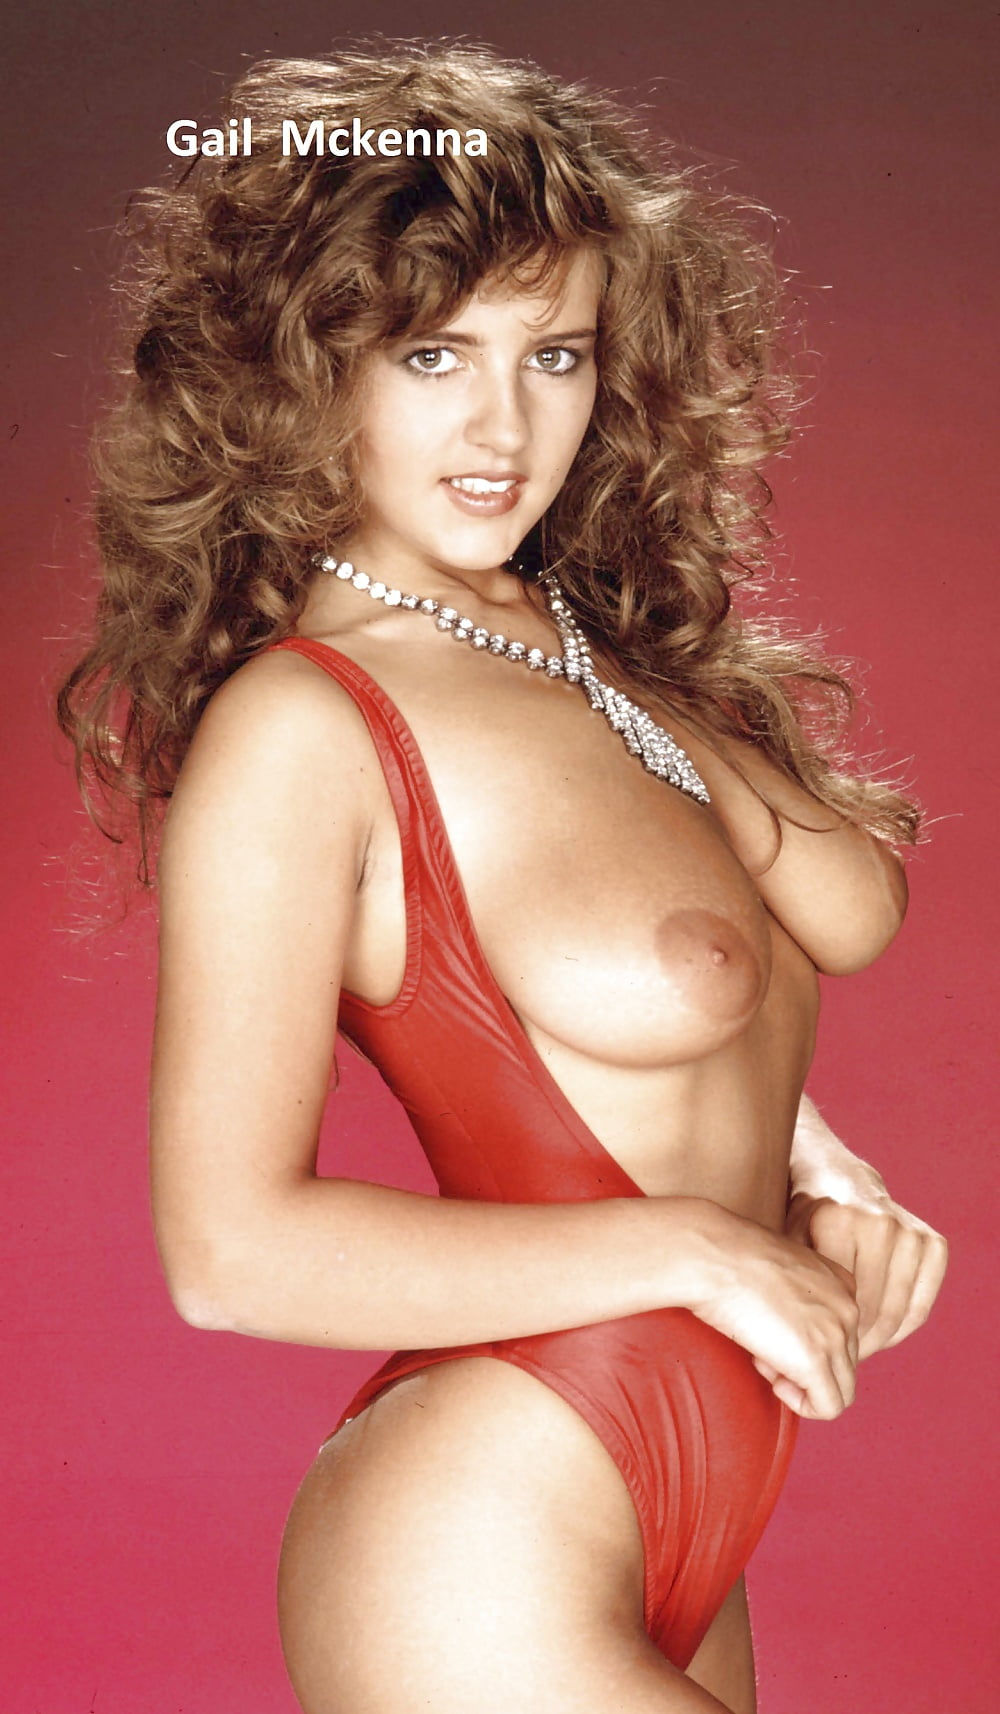 Sun page 3 girl of the year-1327